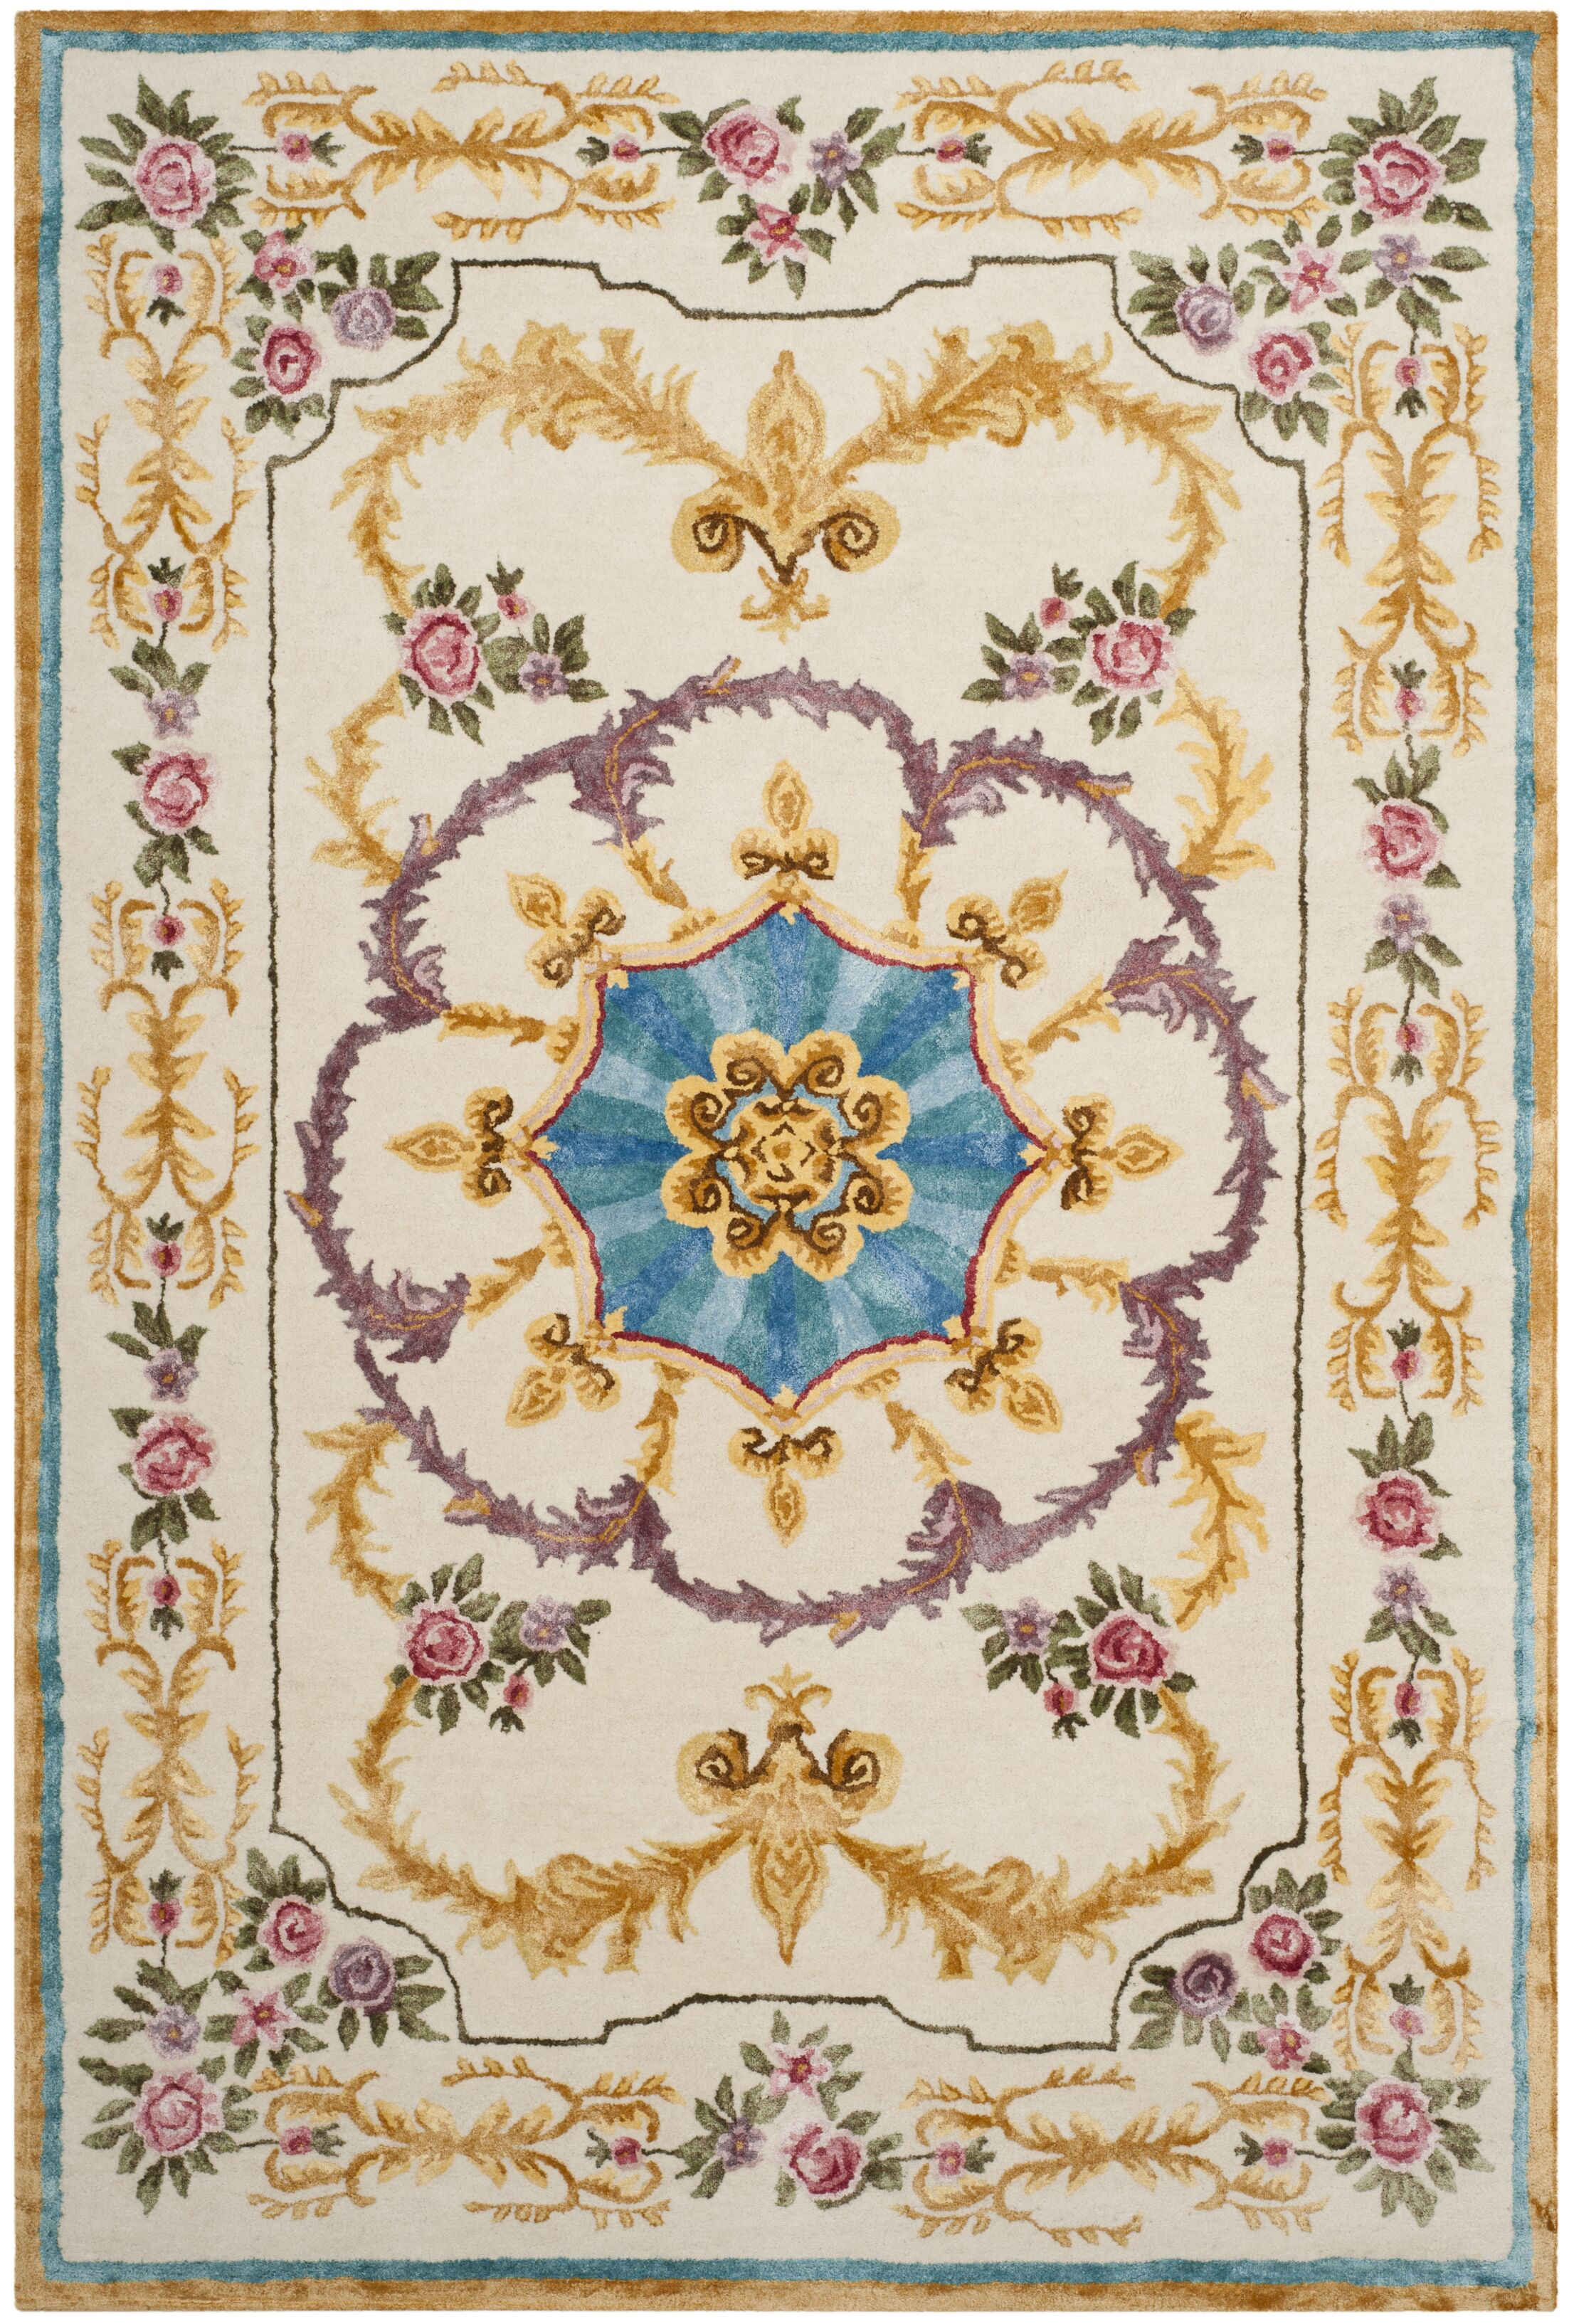 Chaplain Hand-Tufted Ivory/Gold/Purple Area Rug Rug Size: Rectangle 6' x 9'